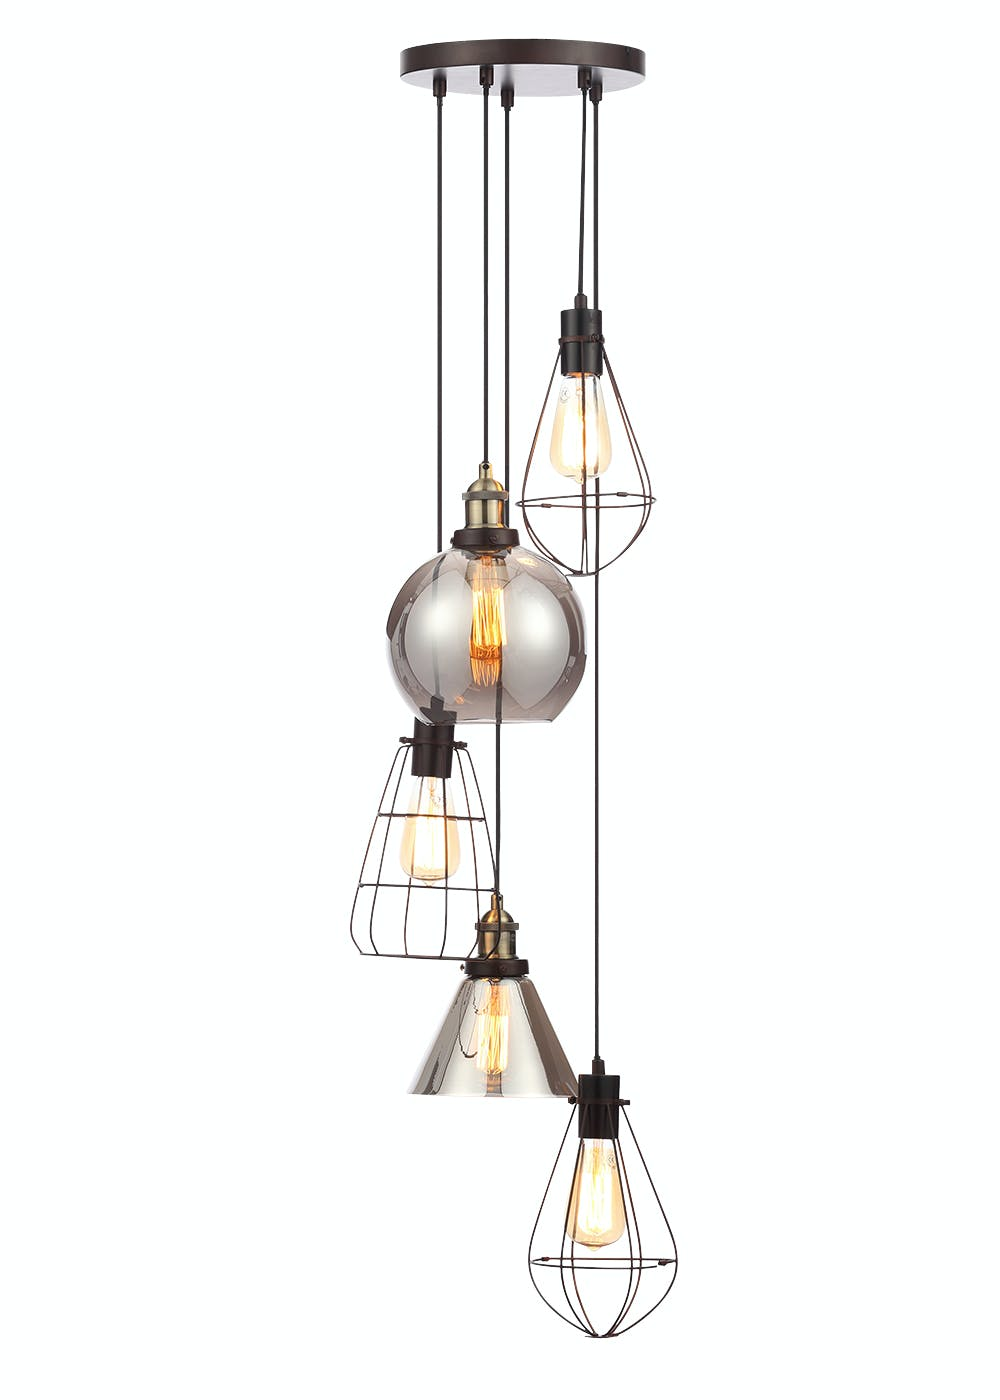 loft fixture brass pendant glass lights fitting modern industrial christmas permo lamps vintage lamp in from retro decorations bronze item light for antique ceiling luminaire home